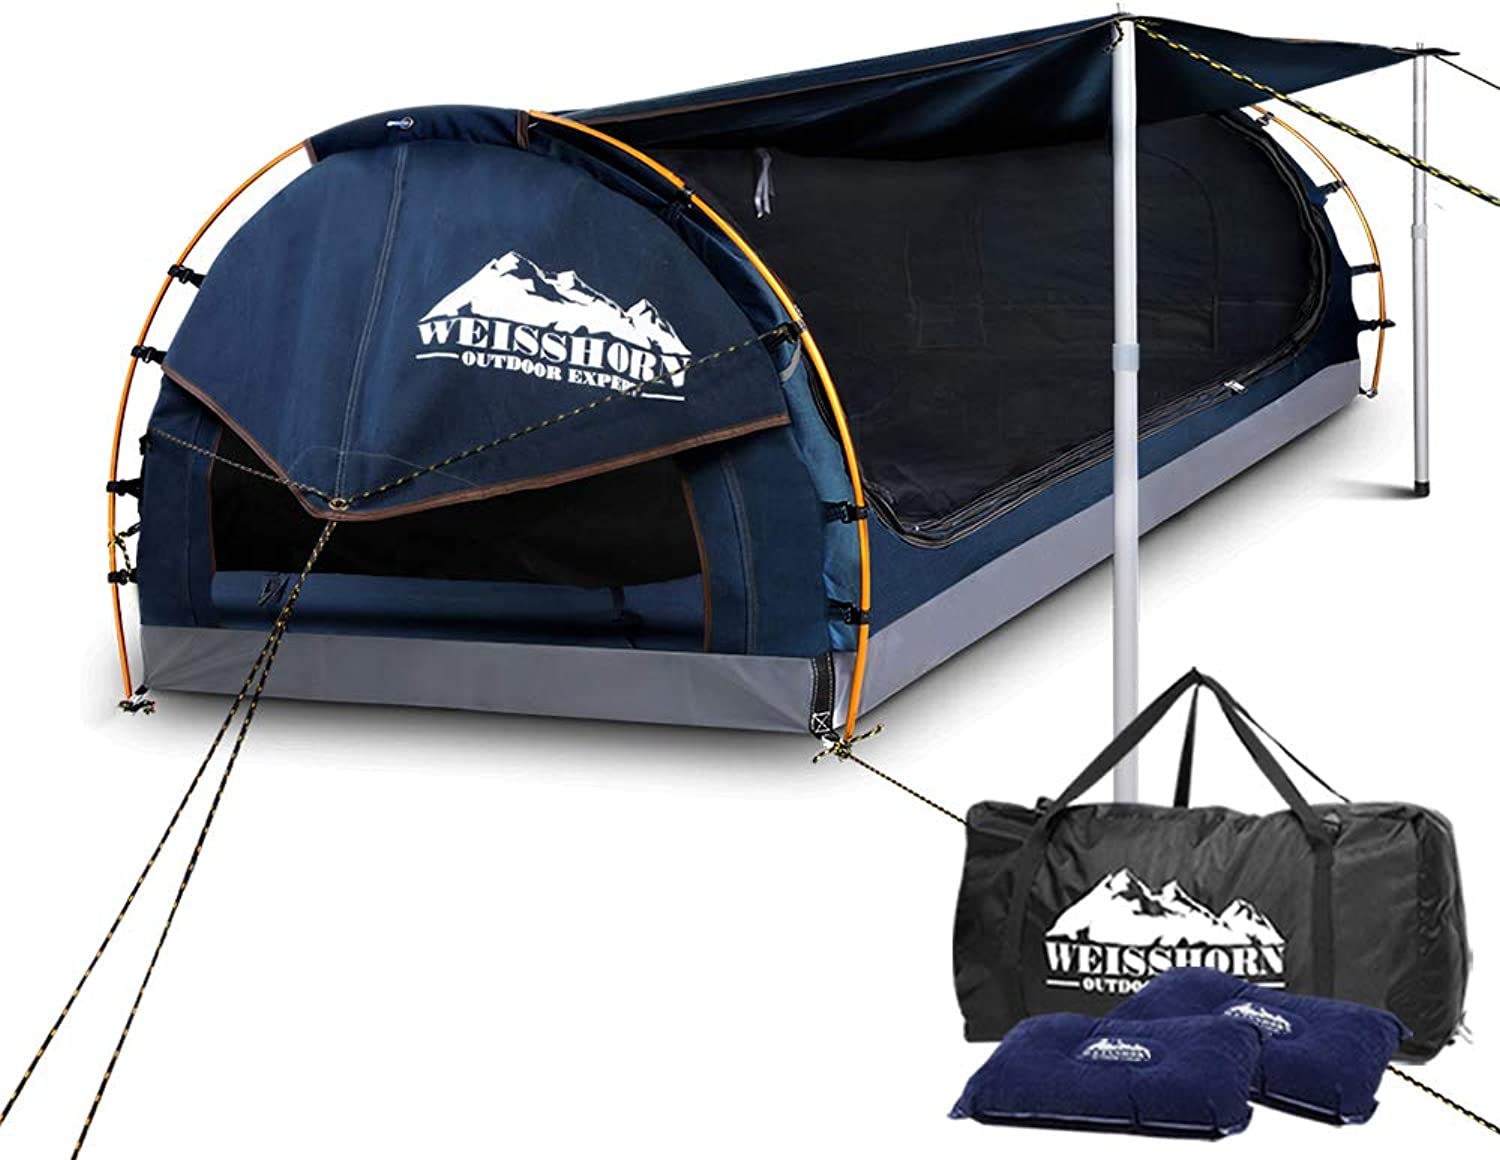 Weisshorn Double Swag Camping Swag Canvas Tent  Dark blueee